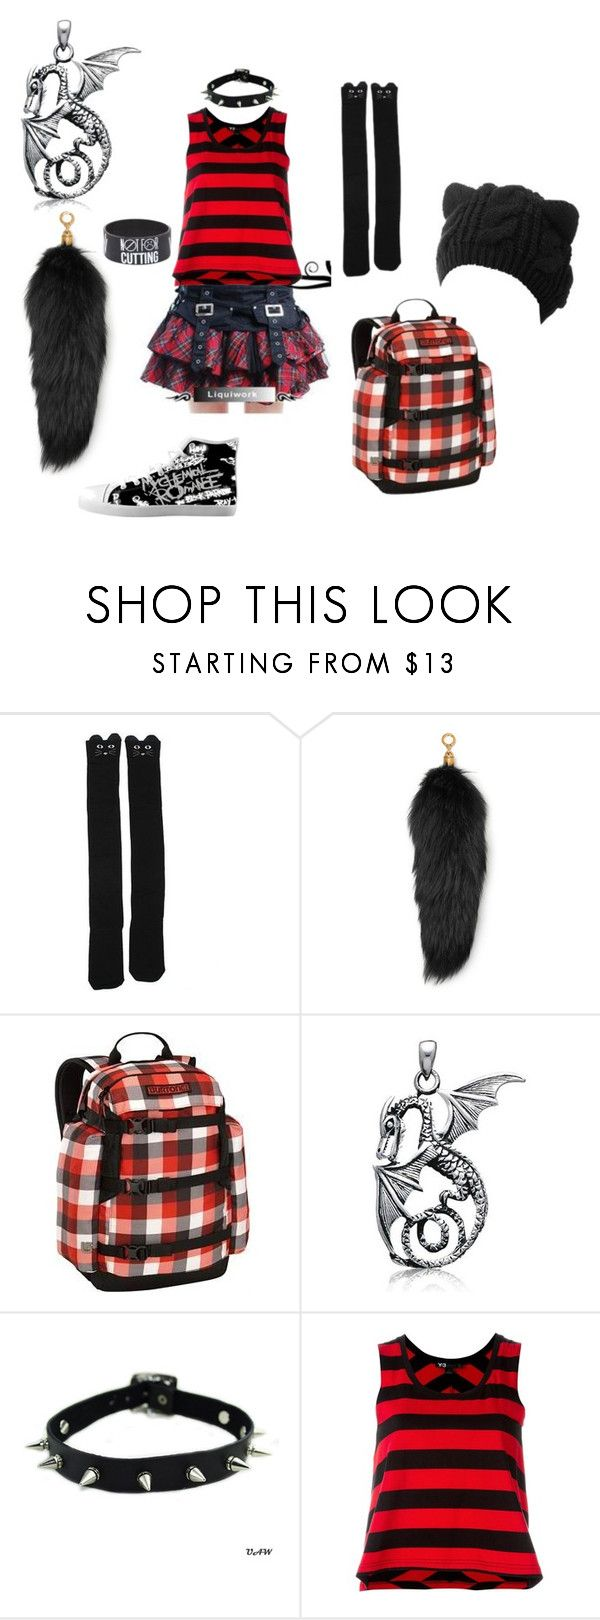 """""""Erin Elizabeth Pines #3"""" by sidaotic-haack ❤ liked on Polyvore featuring Kate Spade, Michael Kors, Burton, Bling Jewelry and Y-3"""